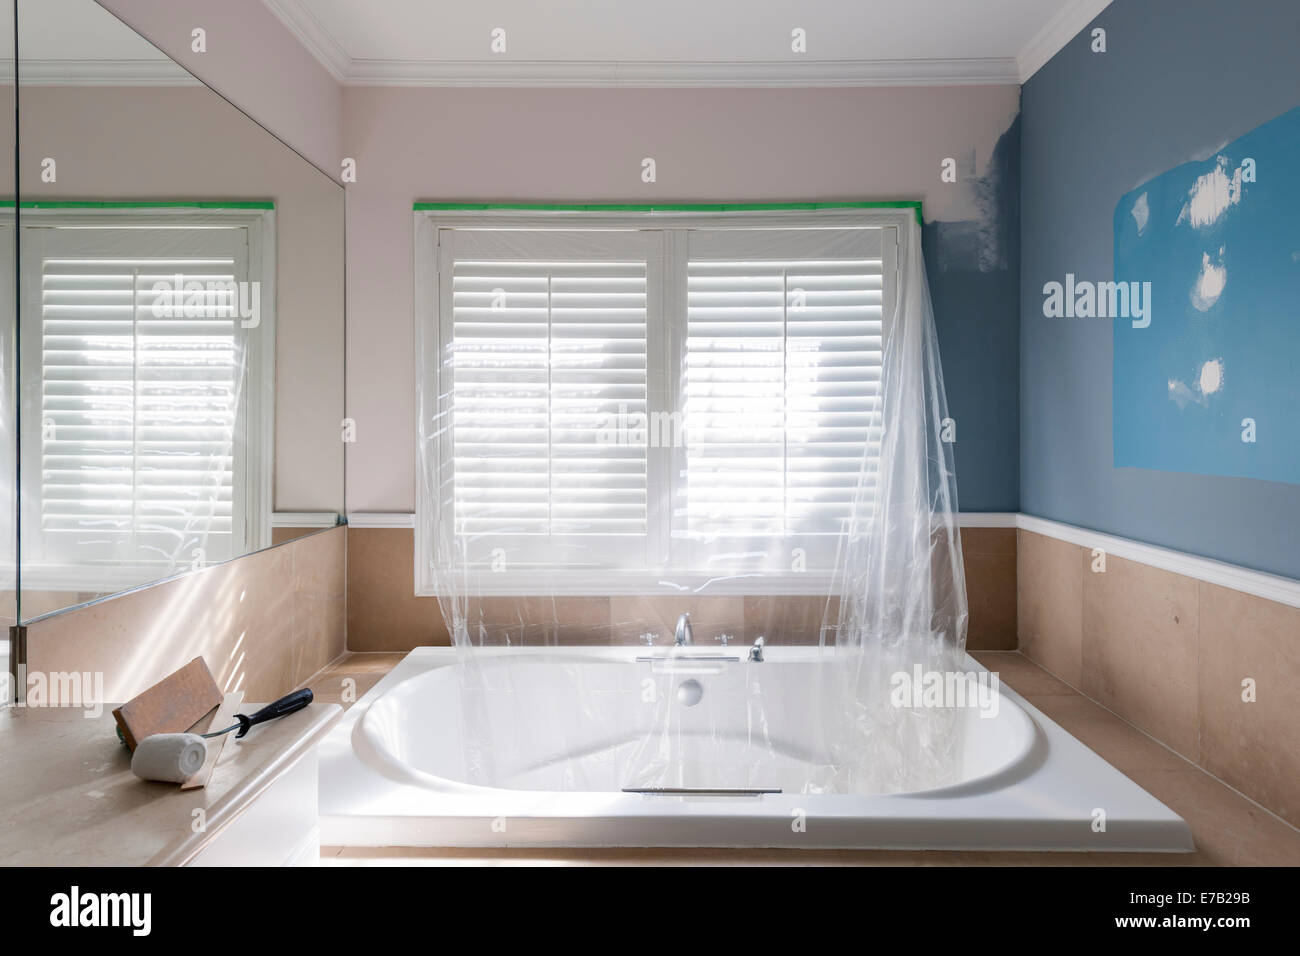 Home renovation of residential bathroom with large tub showing paint ...